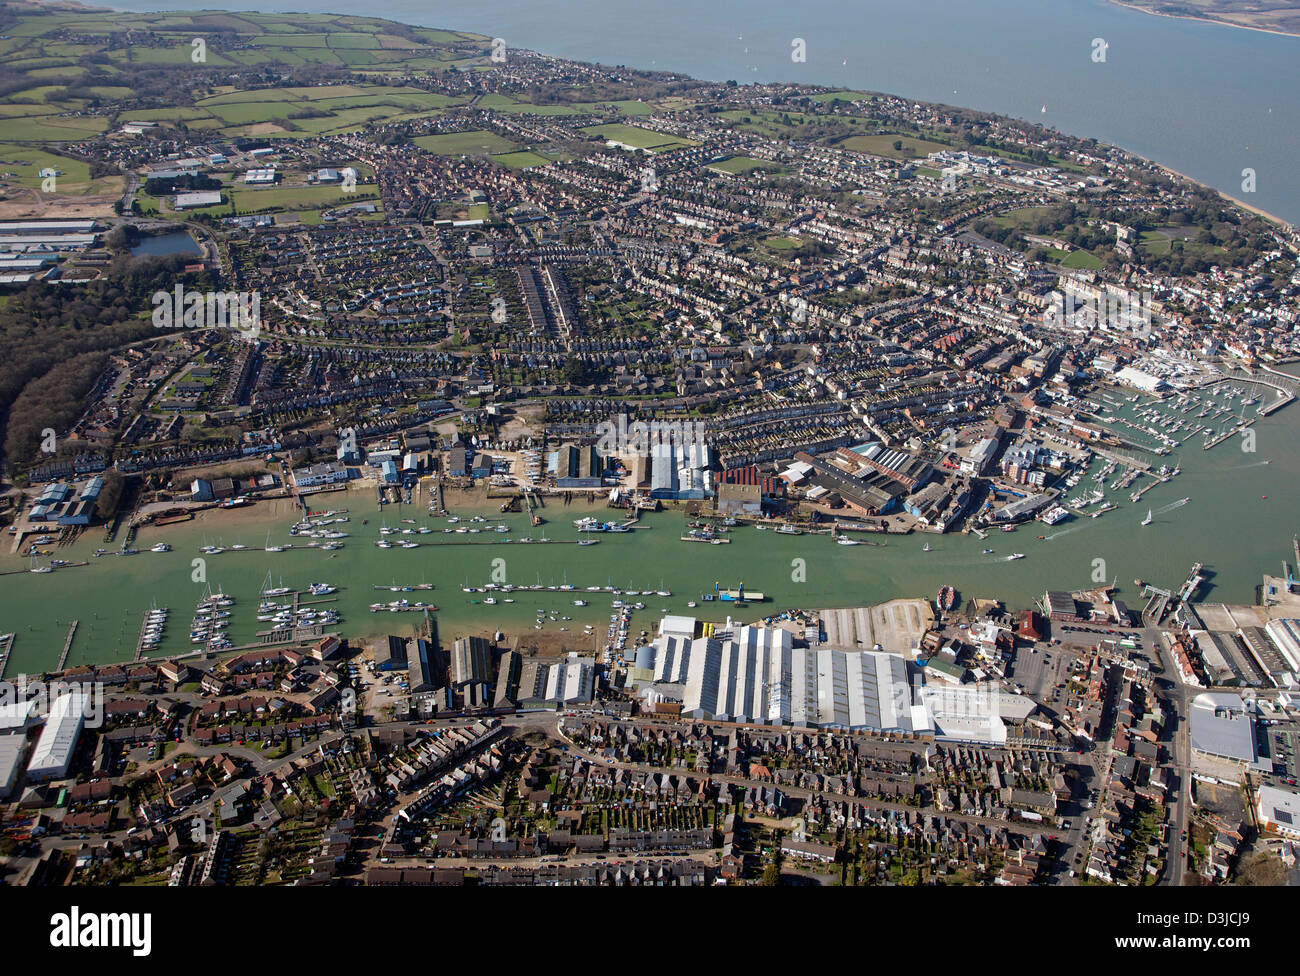 Aerial view of Cowes on the Isle of Wight, and the River Medina estuary flowing into The Solent - Stock Image